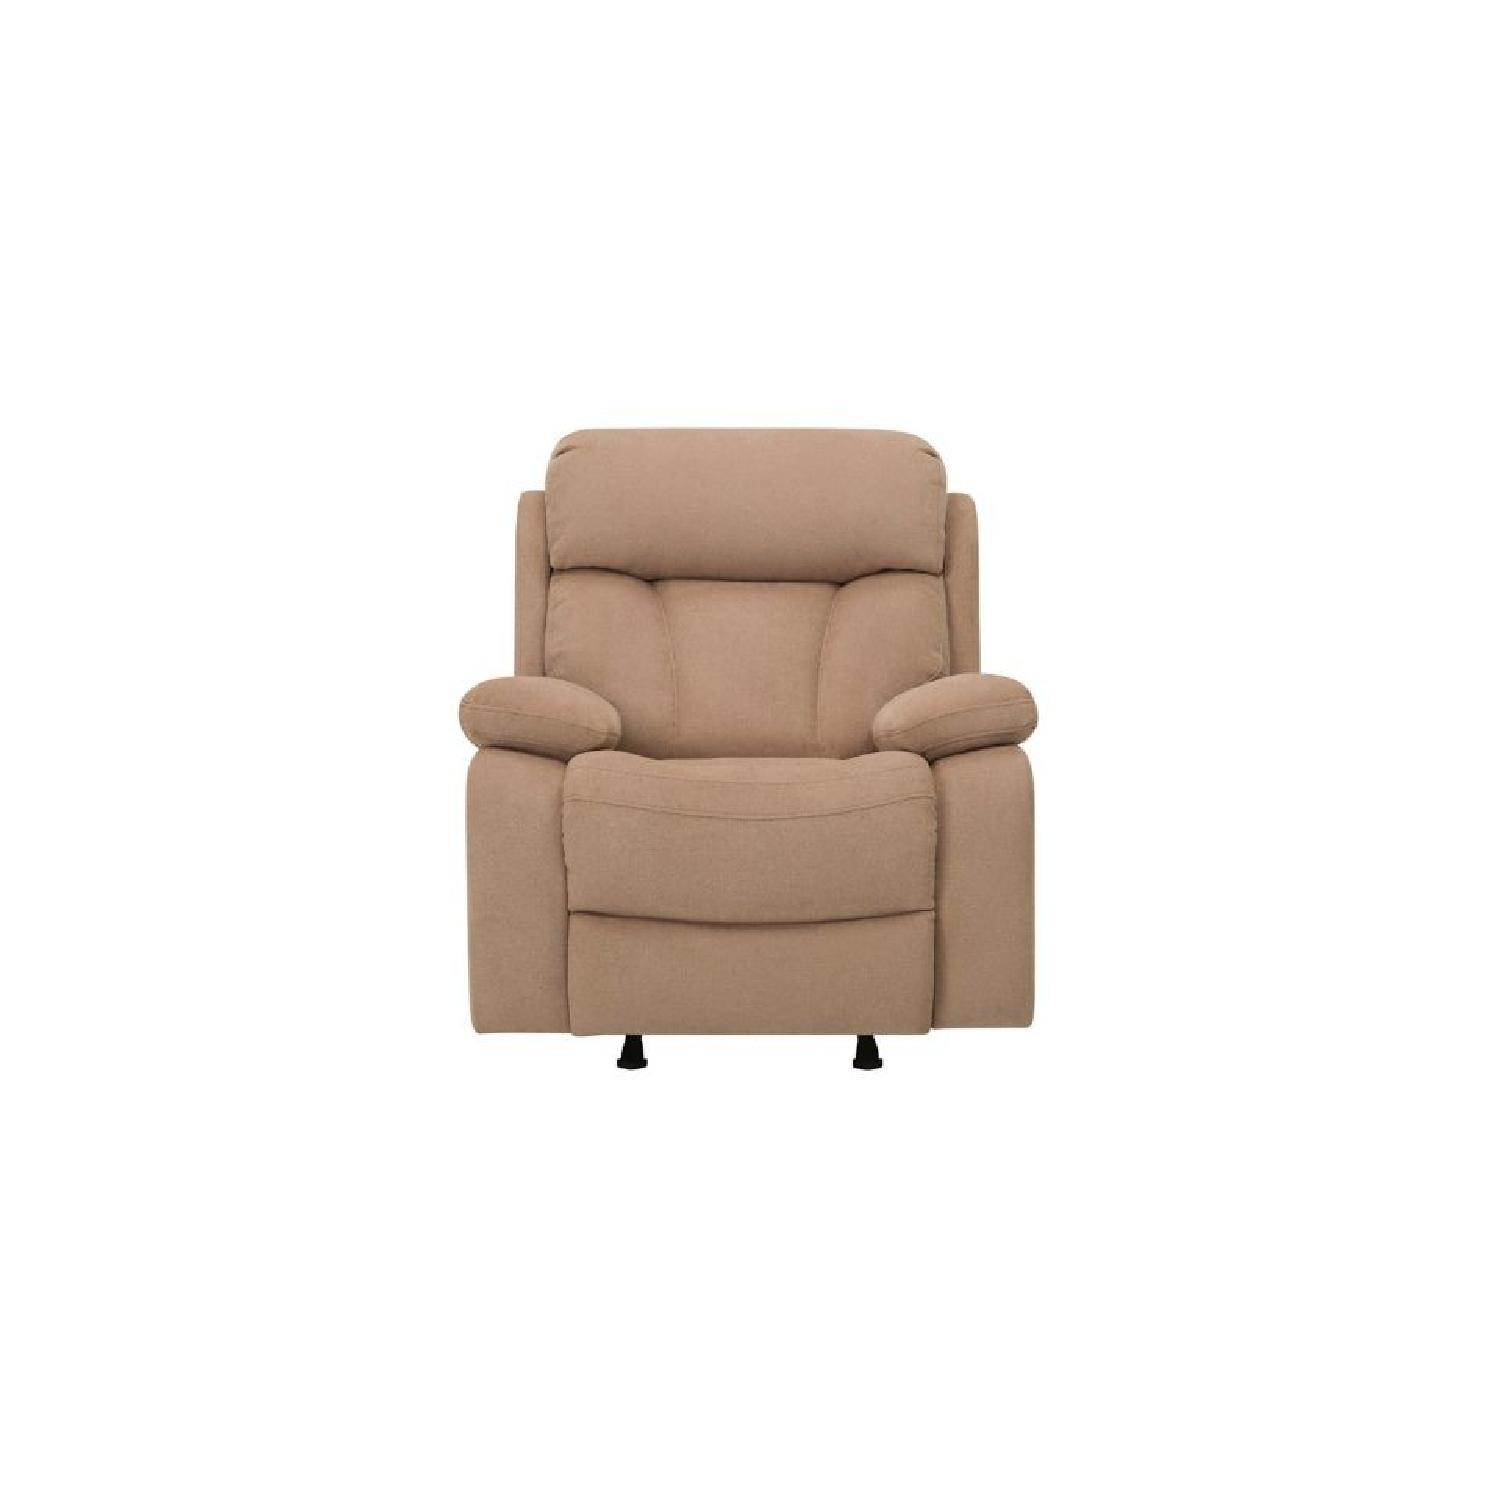 Raymour & Flanigan Connell Power Rocker Chair-2